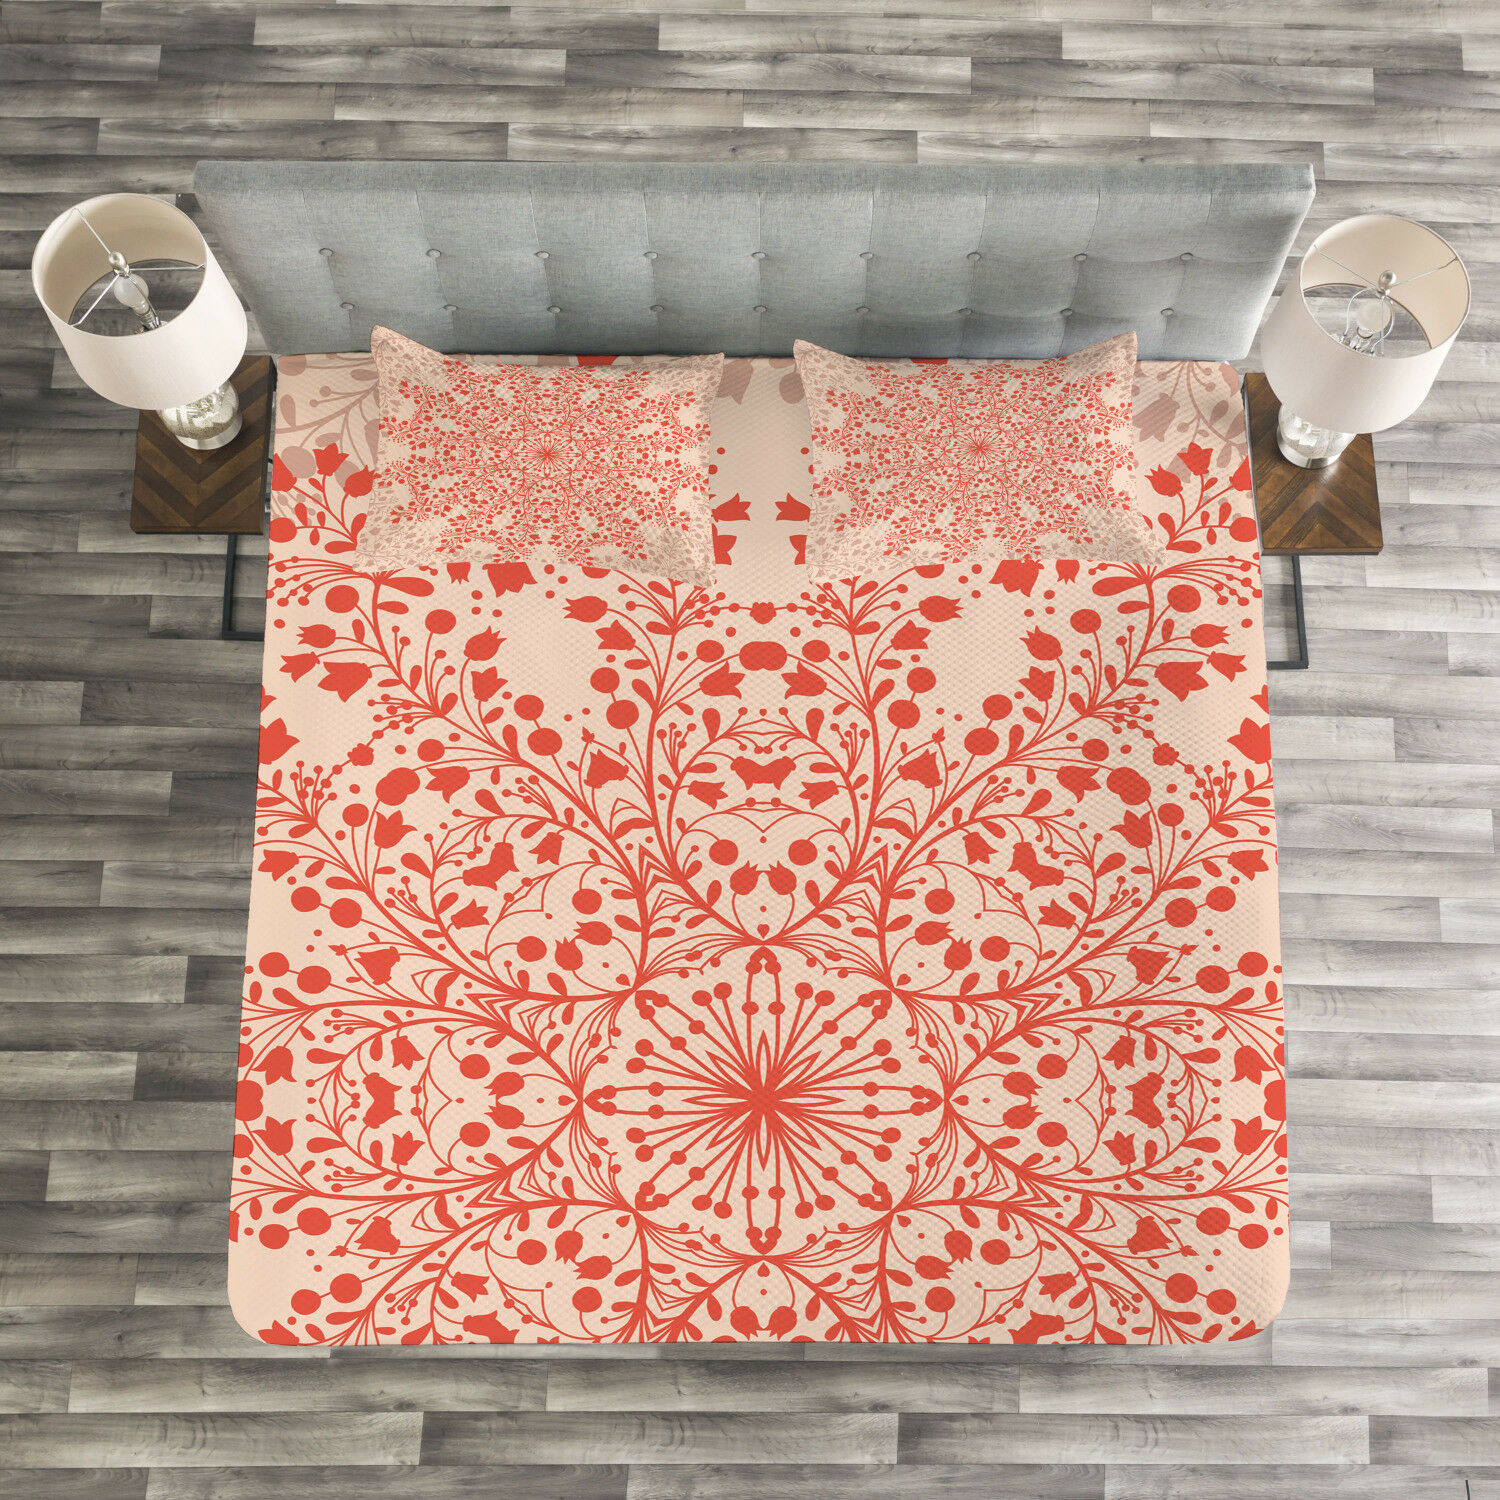 Red Mandala Quilted Bedspread & Pillow Shams Set, Rural Twigs Blooms Print